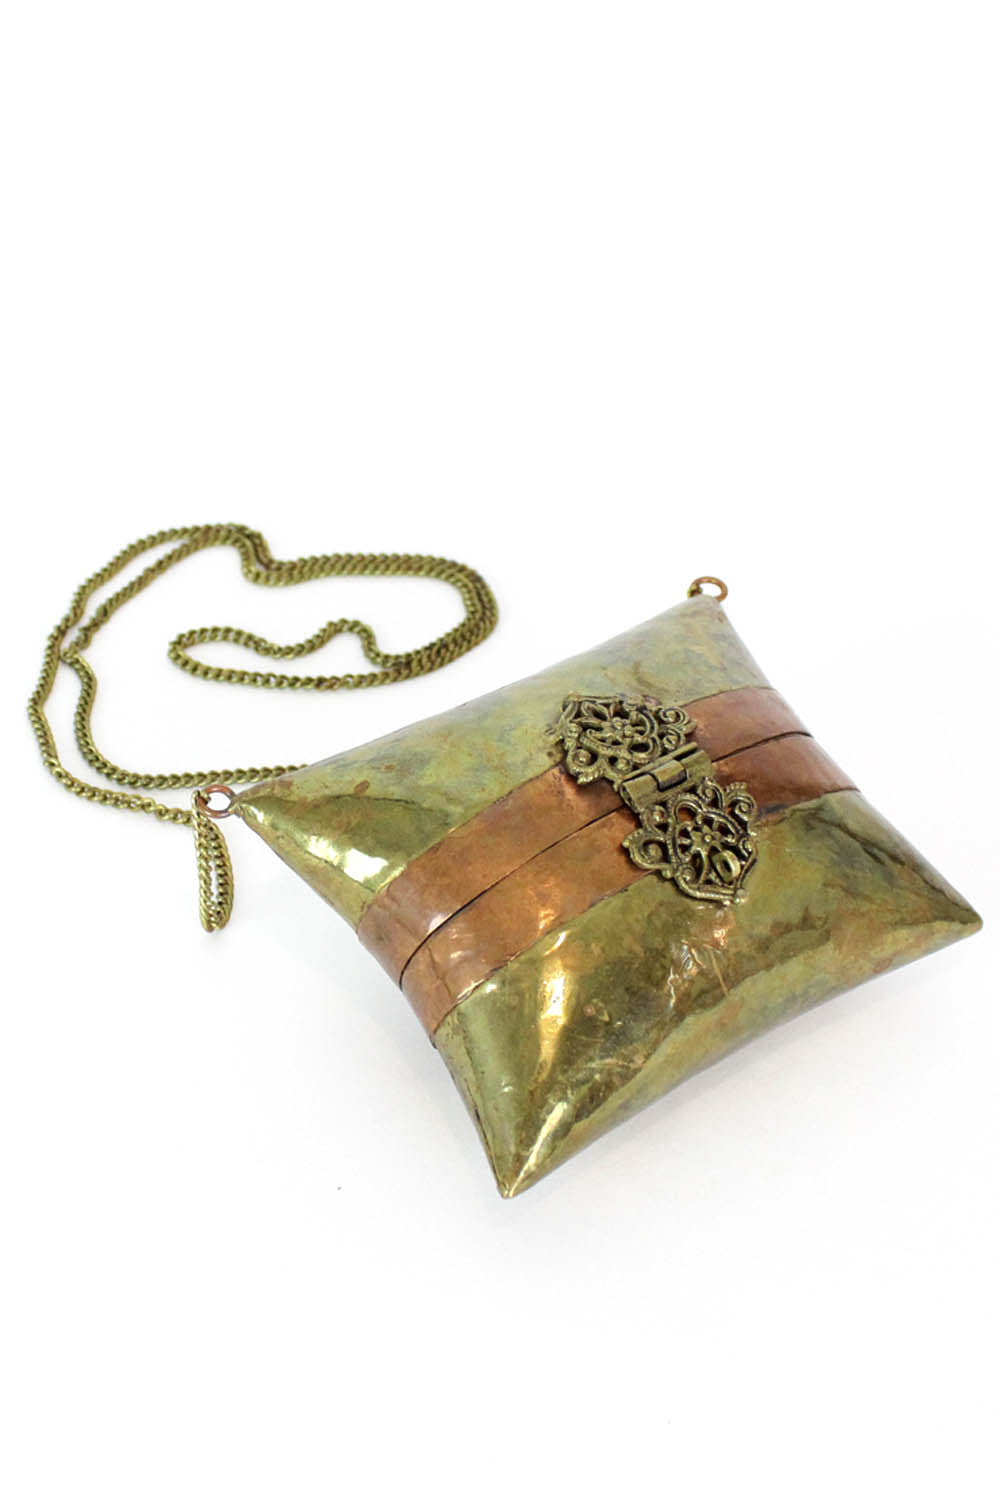 Brass Indian Pillow Purse